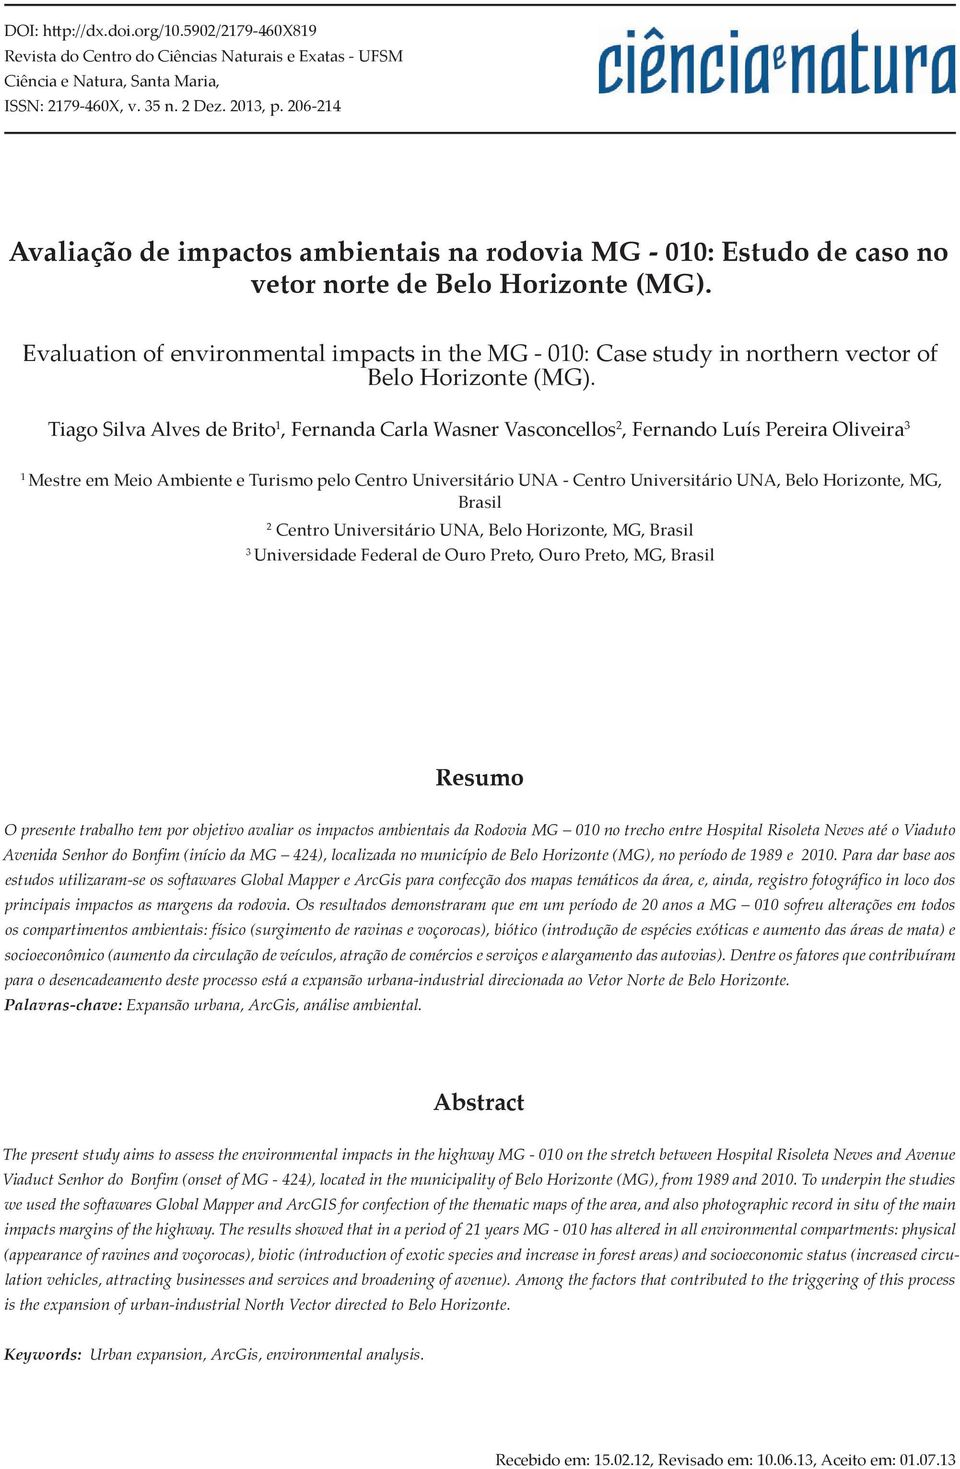 Evaluation of environmental impacts in the MG - 010: Case study in northern vector of Belo Horizonte (MG).